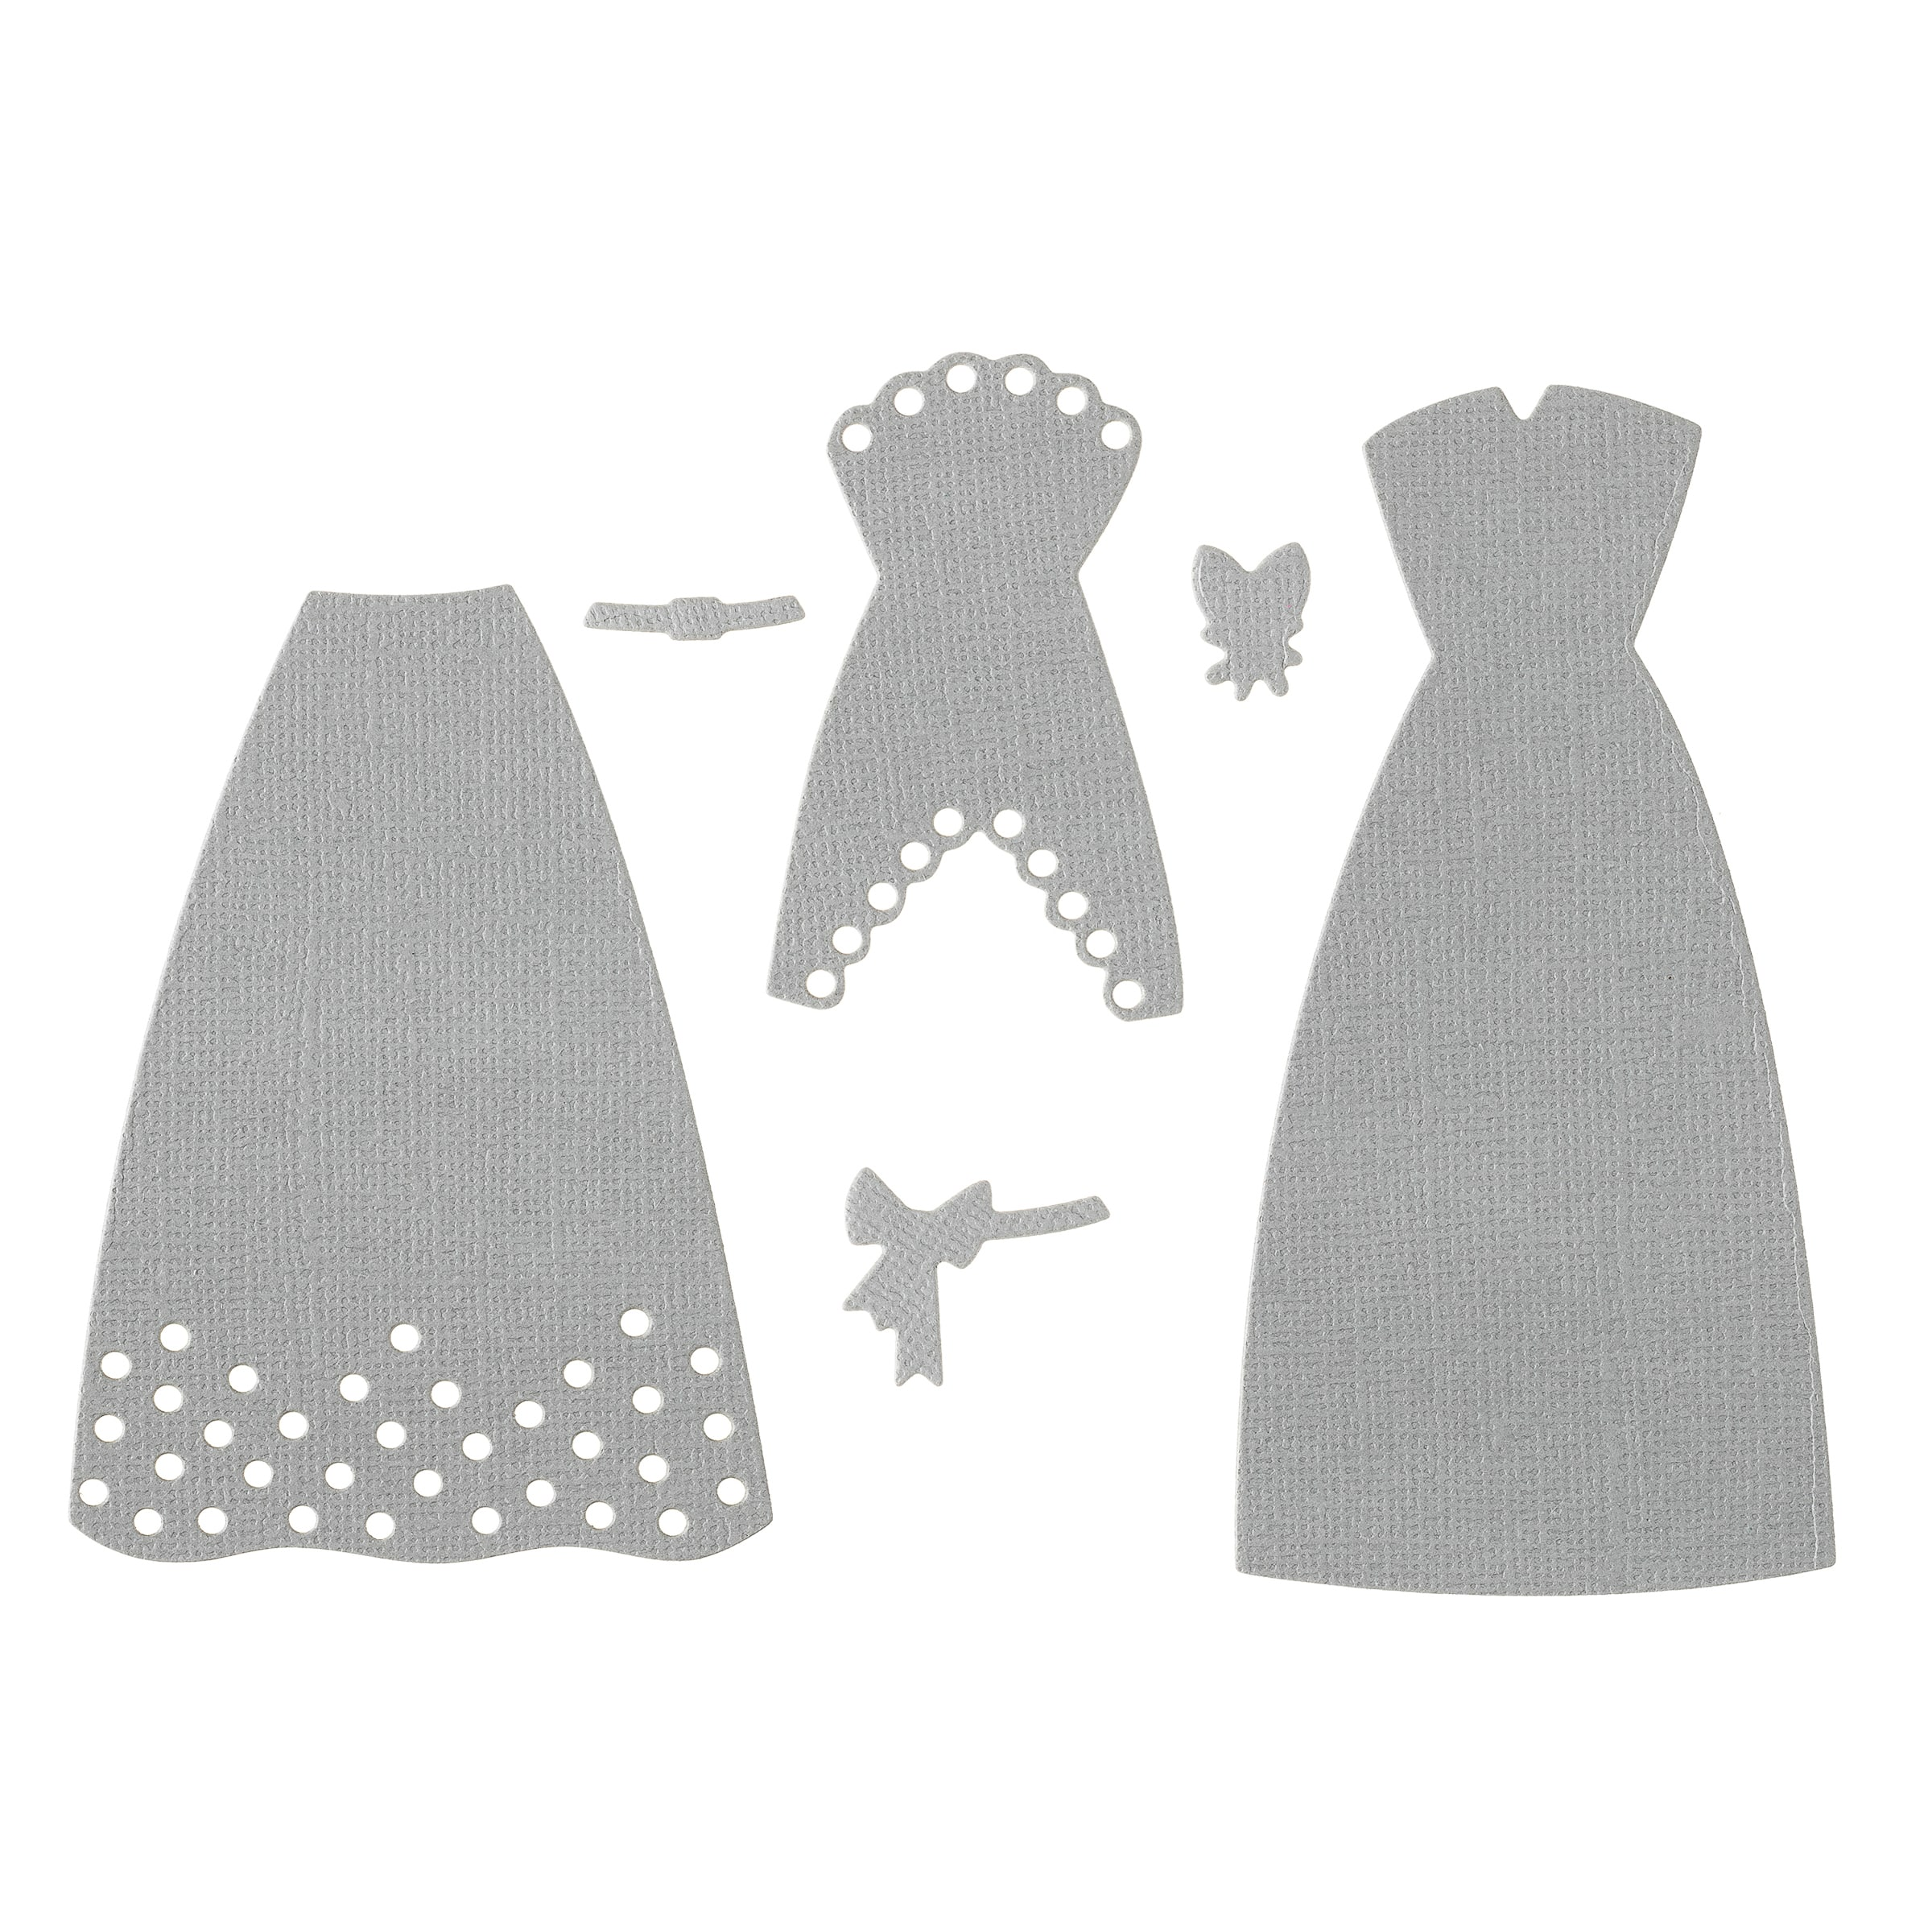 DRESS STAND WITH DRESS DIE CUTS FOR CARD TOPPERS